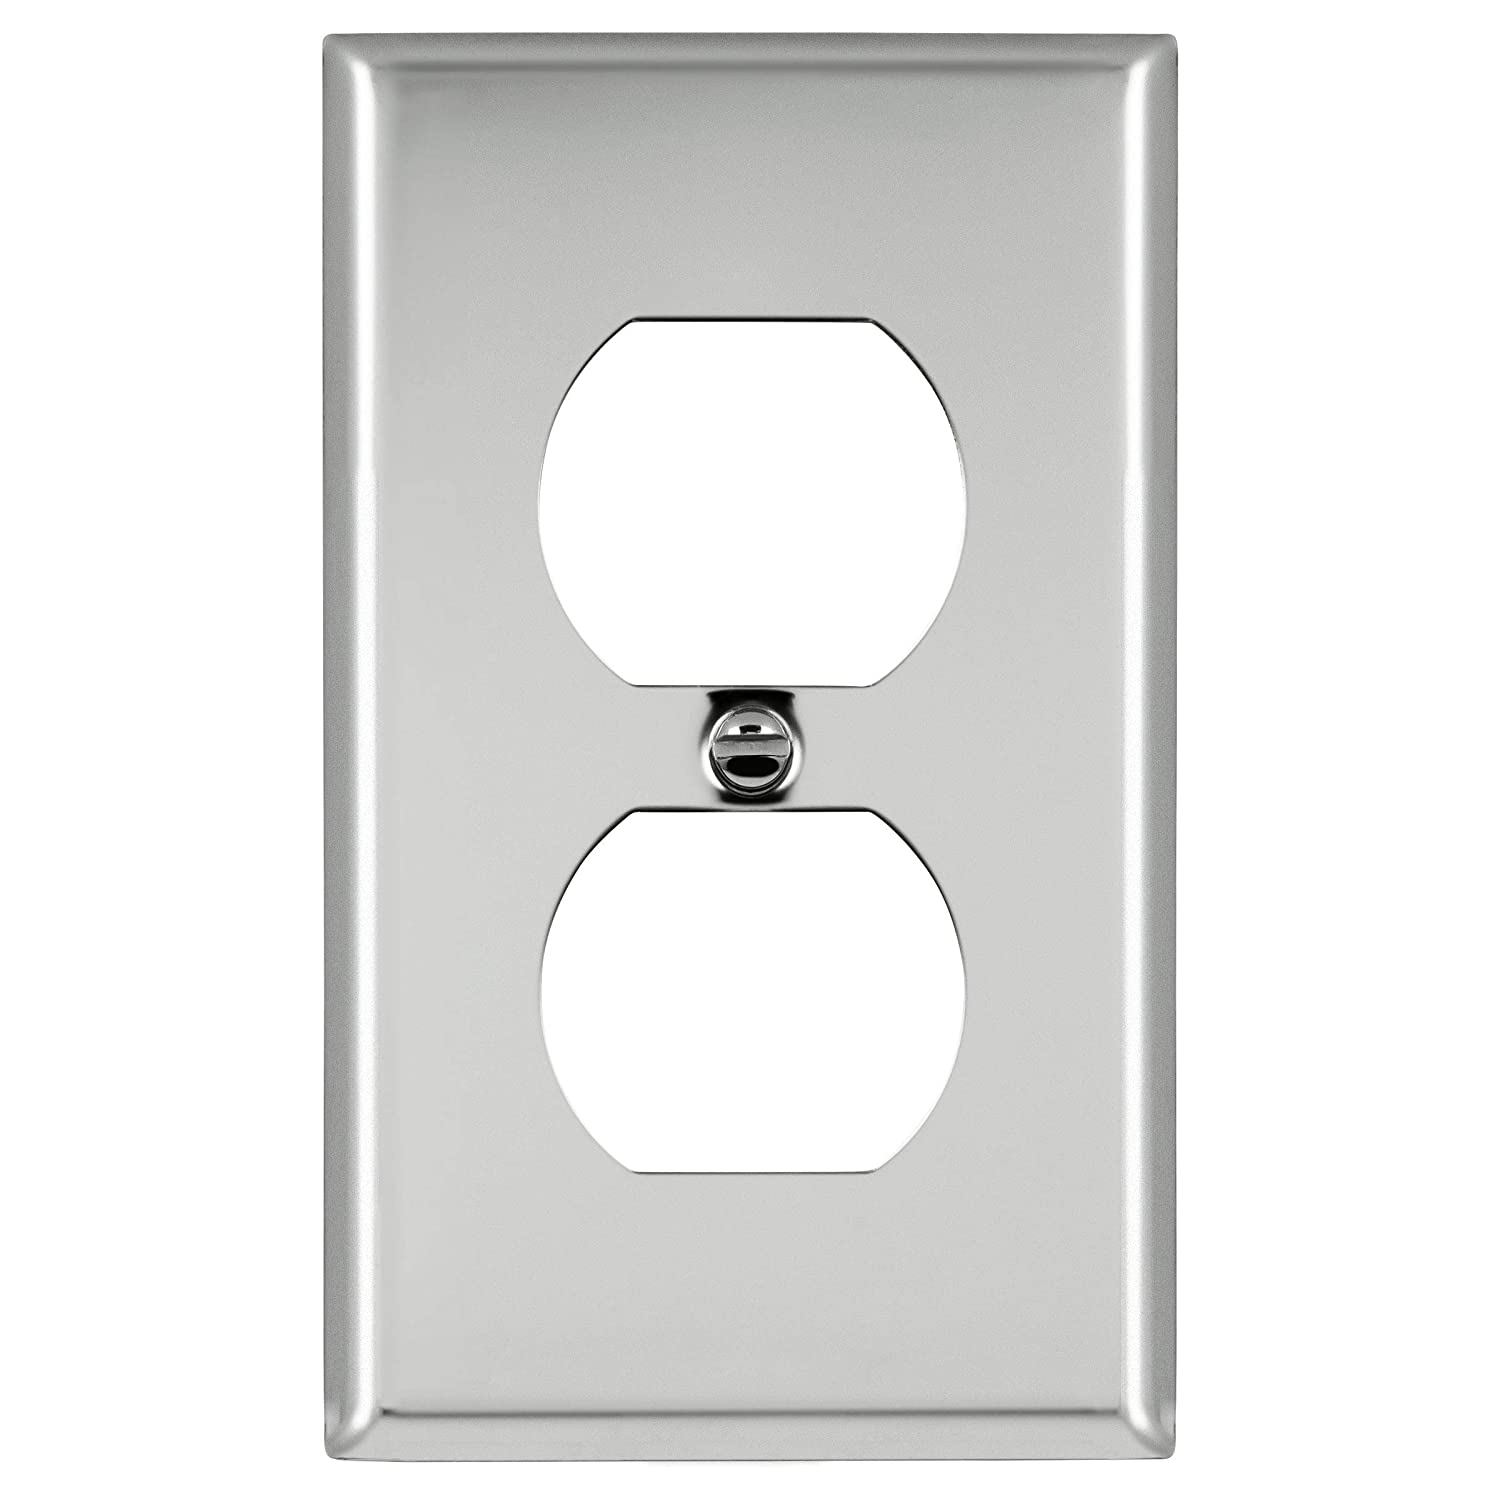 ENERLITES Duplex Receptacle Outlet Metal Wall Plate 430 Stainless Steel Size 1-Gang 4.50 x 2.76 7721-10PCS Corrosive Resistant Size 1-Gang 4.50 x 2.76 10 Pack